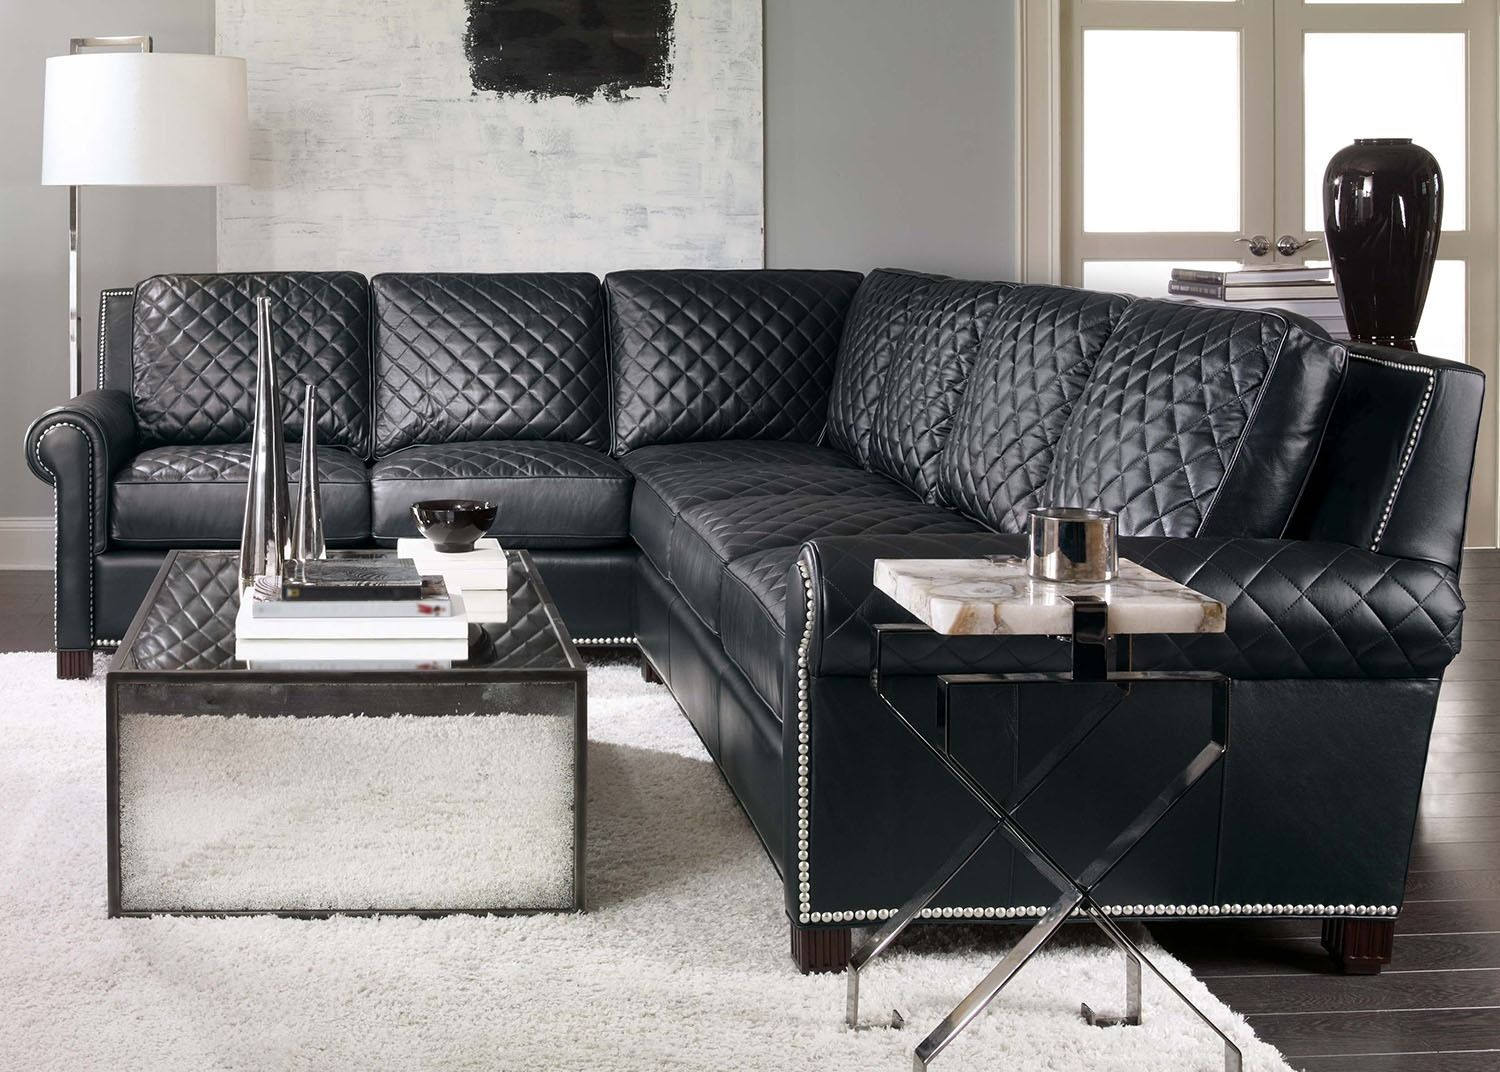 Coco Black Leather Sectional Sofa   A Place to Sit   Leather ...